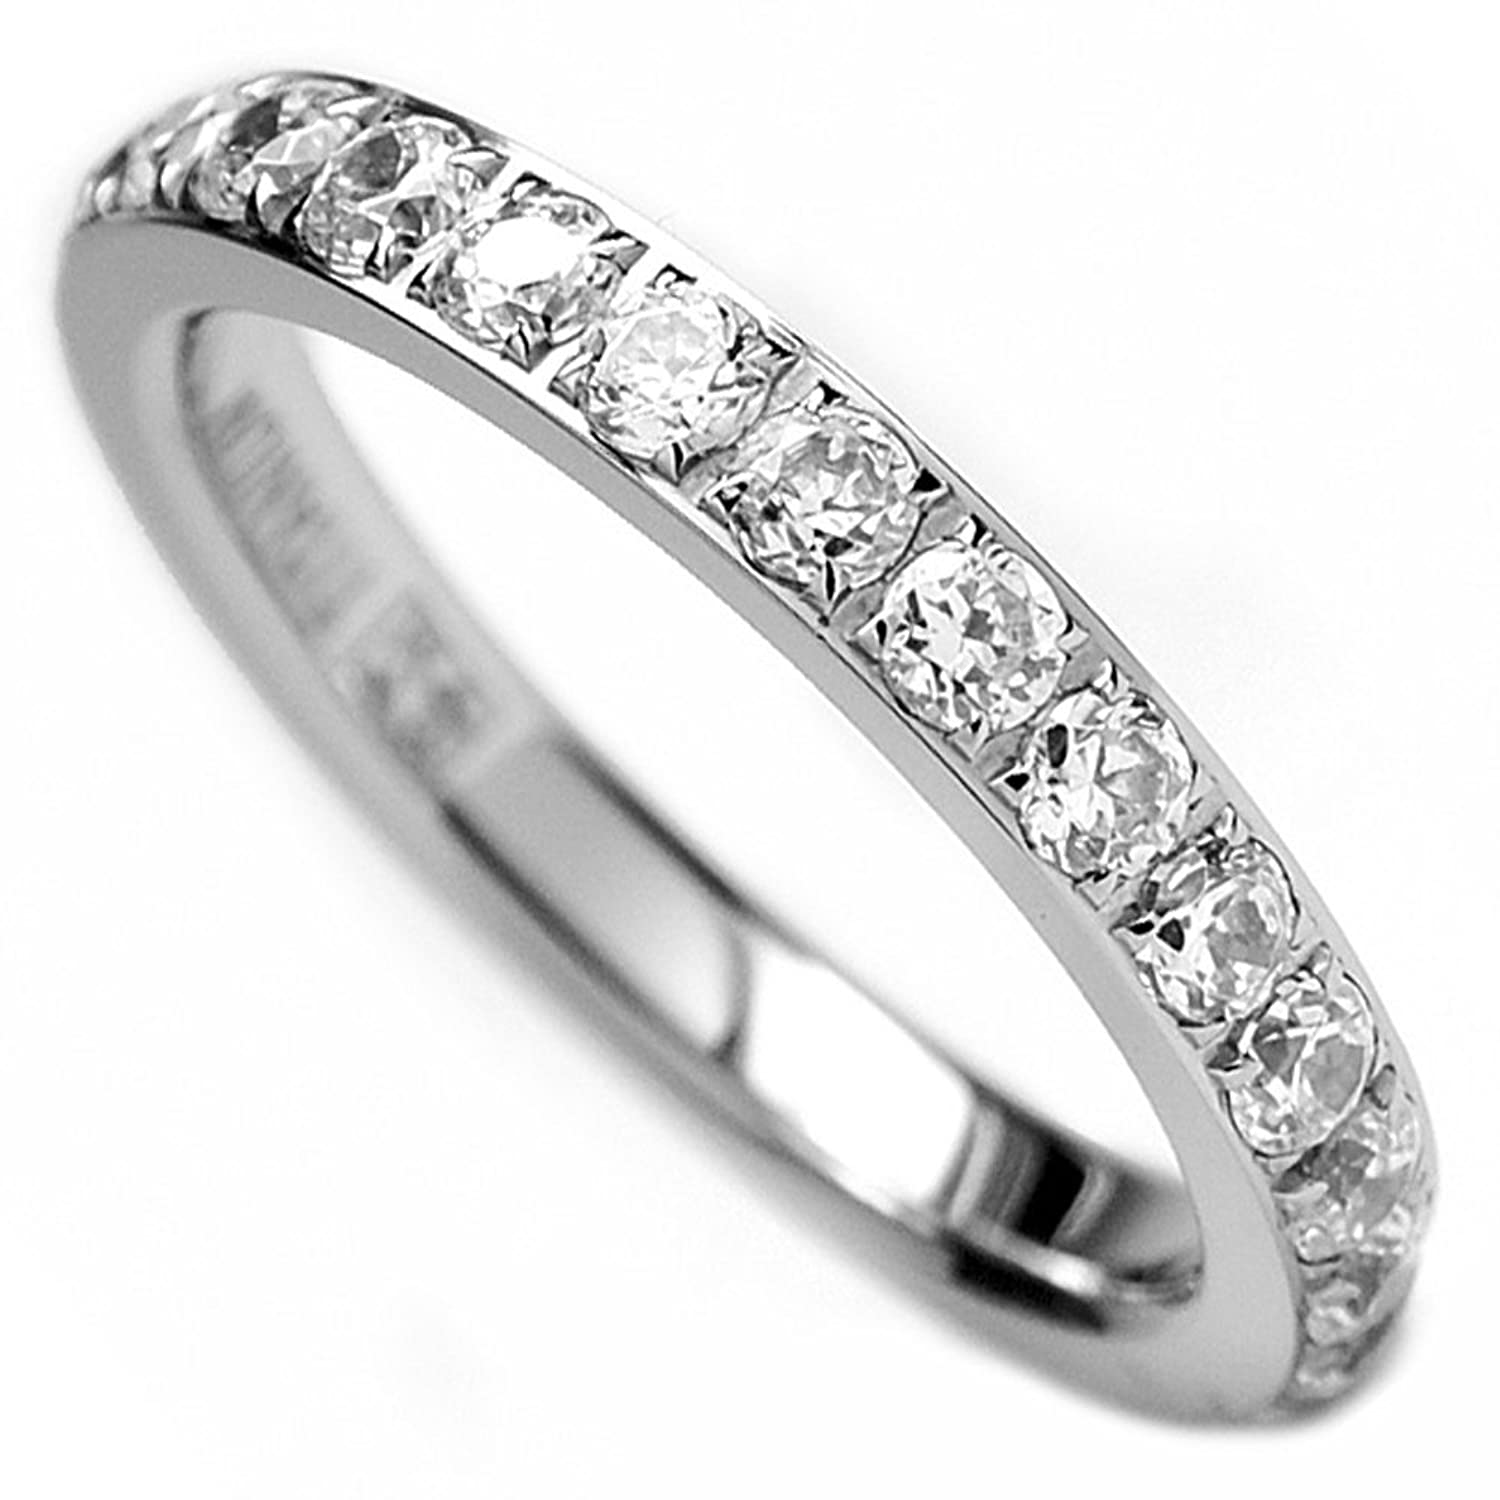 amazoncom 3mm ladies titanium eternity engagement band wedding ring with pave set cubic zirconia size 4 to 9 jewelry - Wedding Rings Amazon